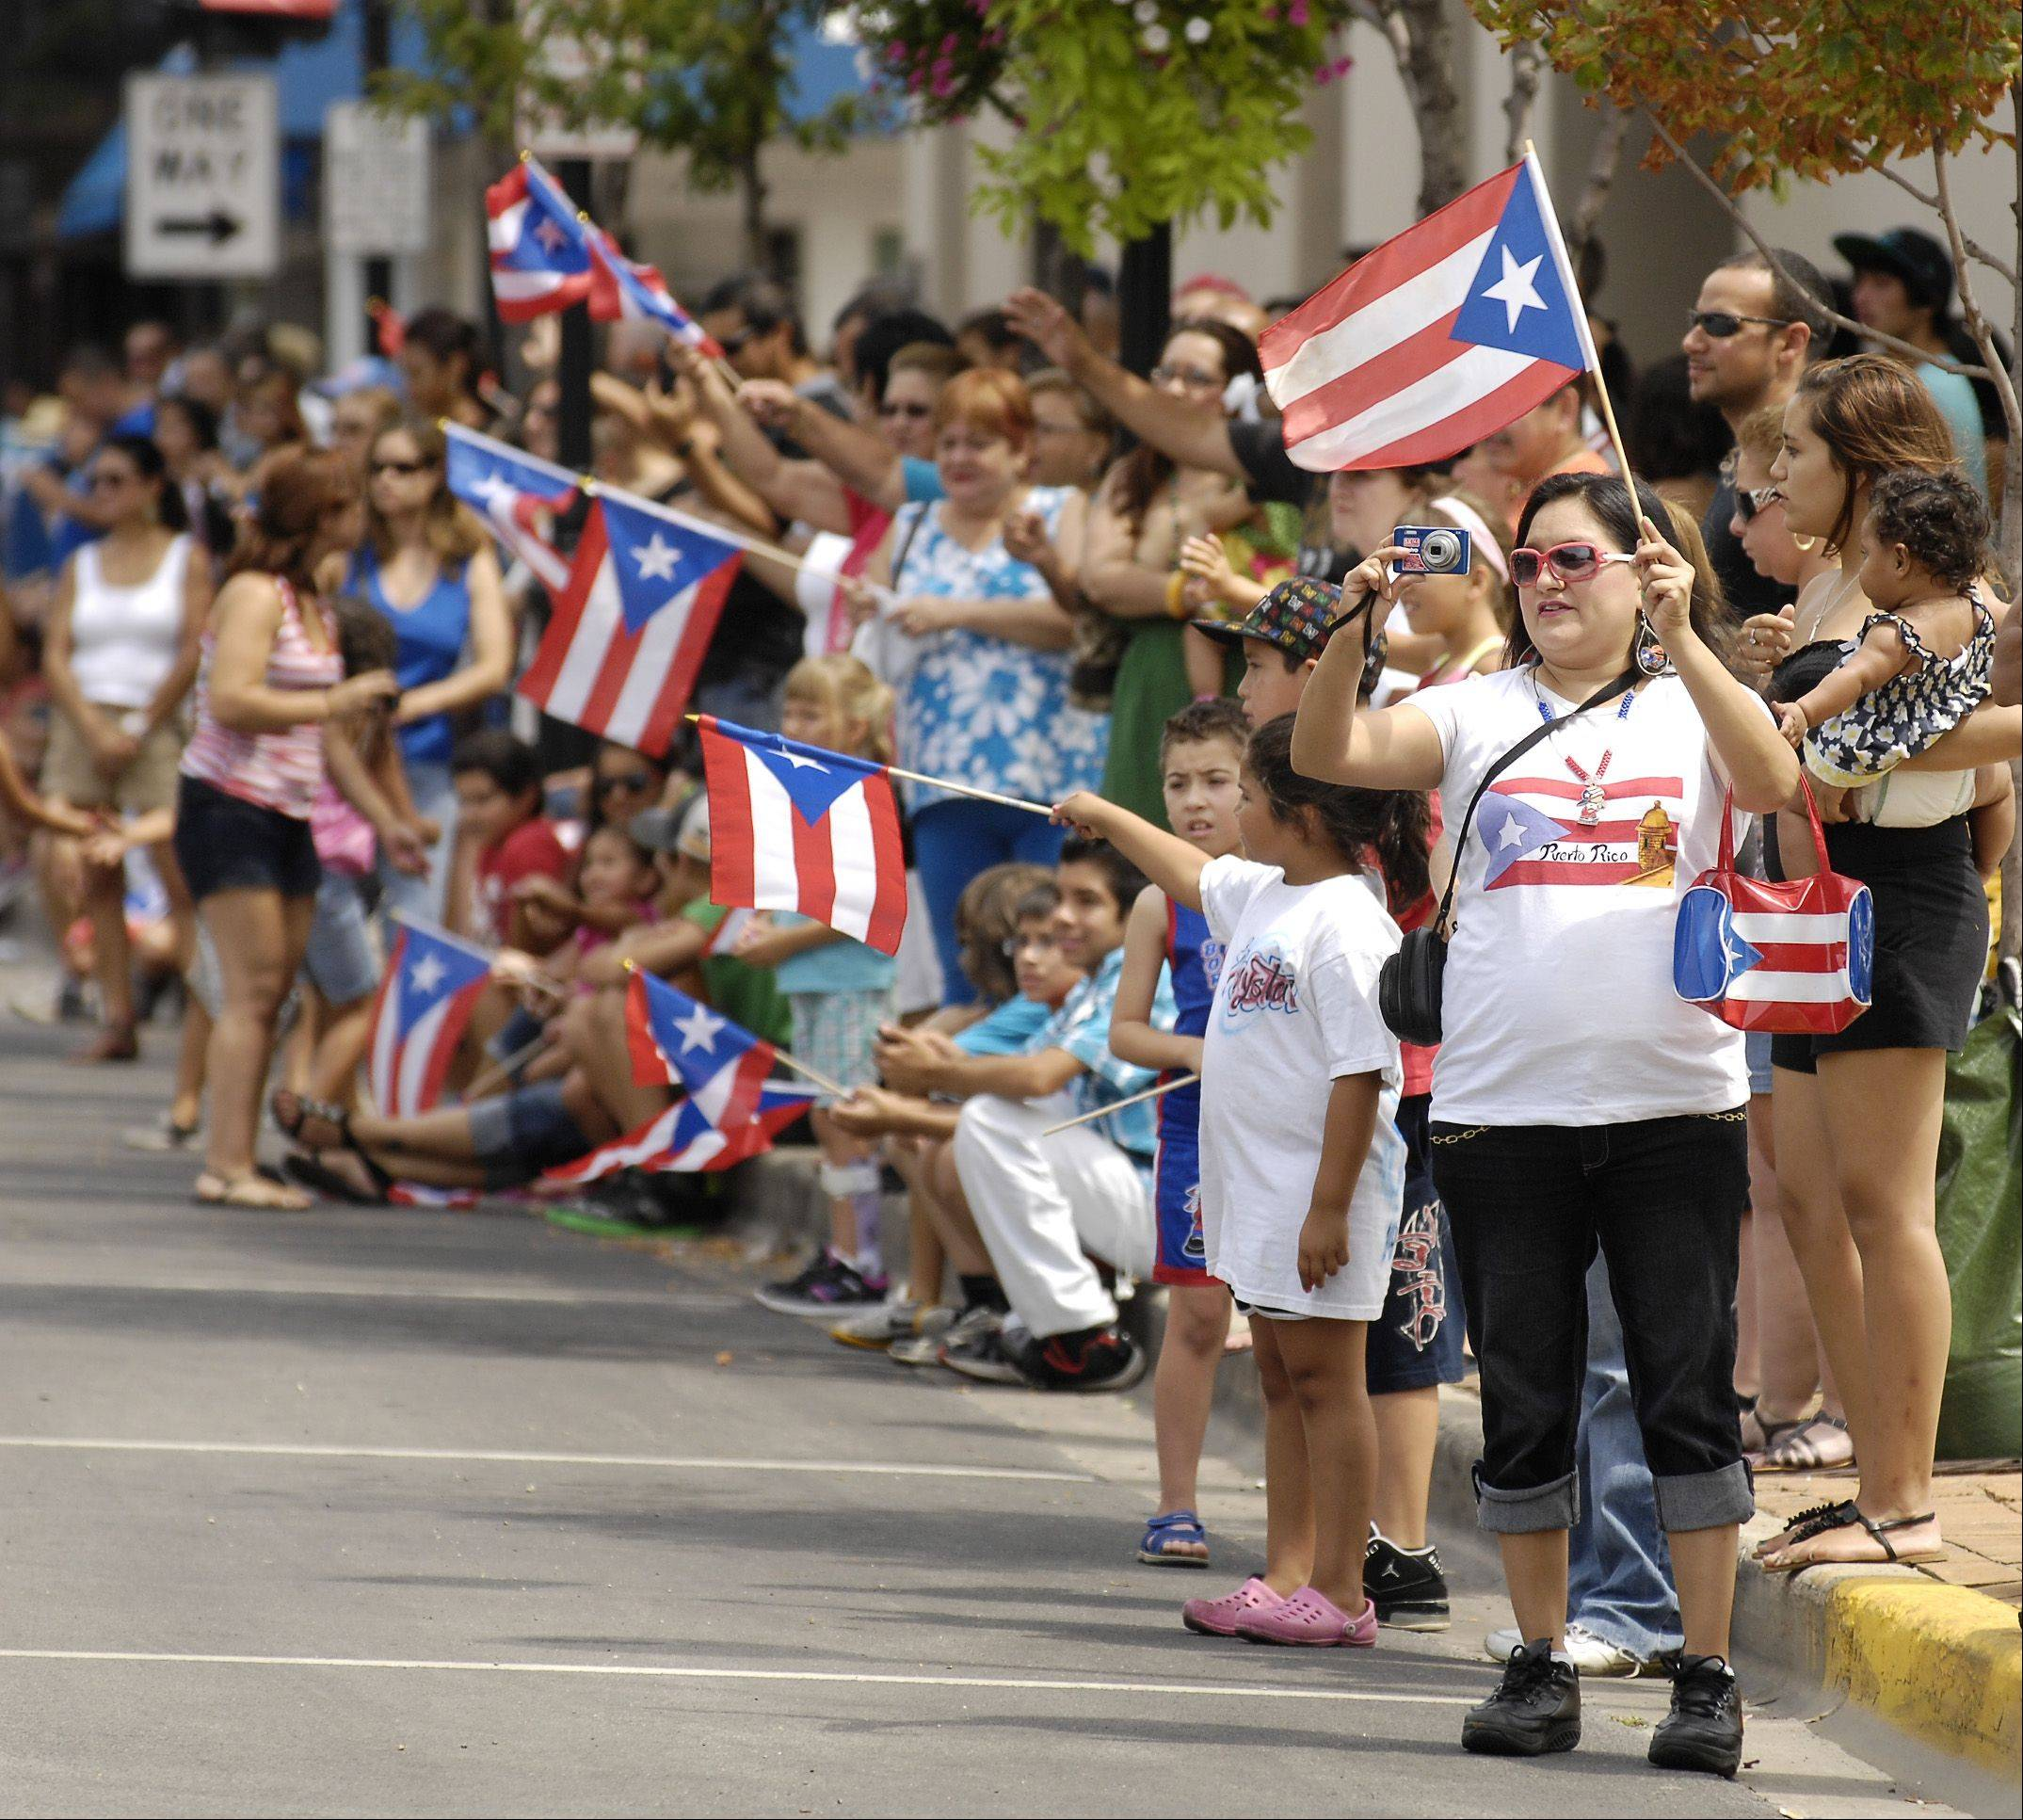 Sunday�s parade will be one of the highlights of this year�s Puerto Rican Heritage Fest in Aurora. Organizers expect as many as 9,000 people to attend.